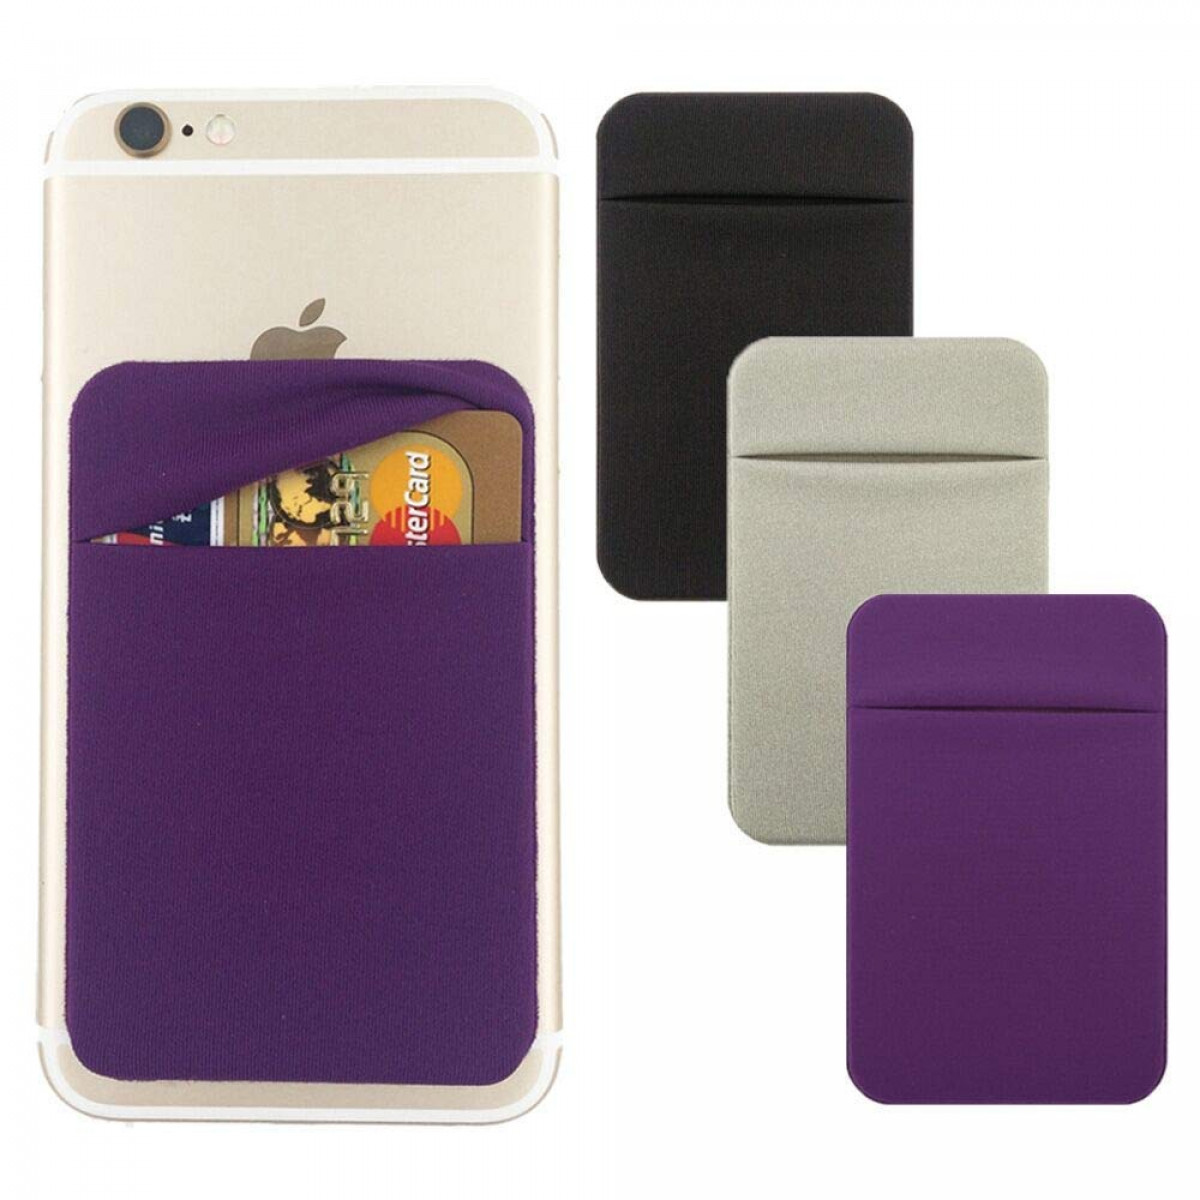 hot sale online 81b98 e8e54 Cell Phone Card Holder[Double Secure With Pocket for ID/Credit Cards] for  Back of Phone,Stick On Card Wallet Sticker Stretchy Lycra Fabric for ...